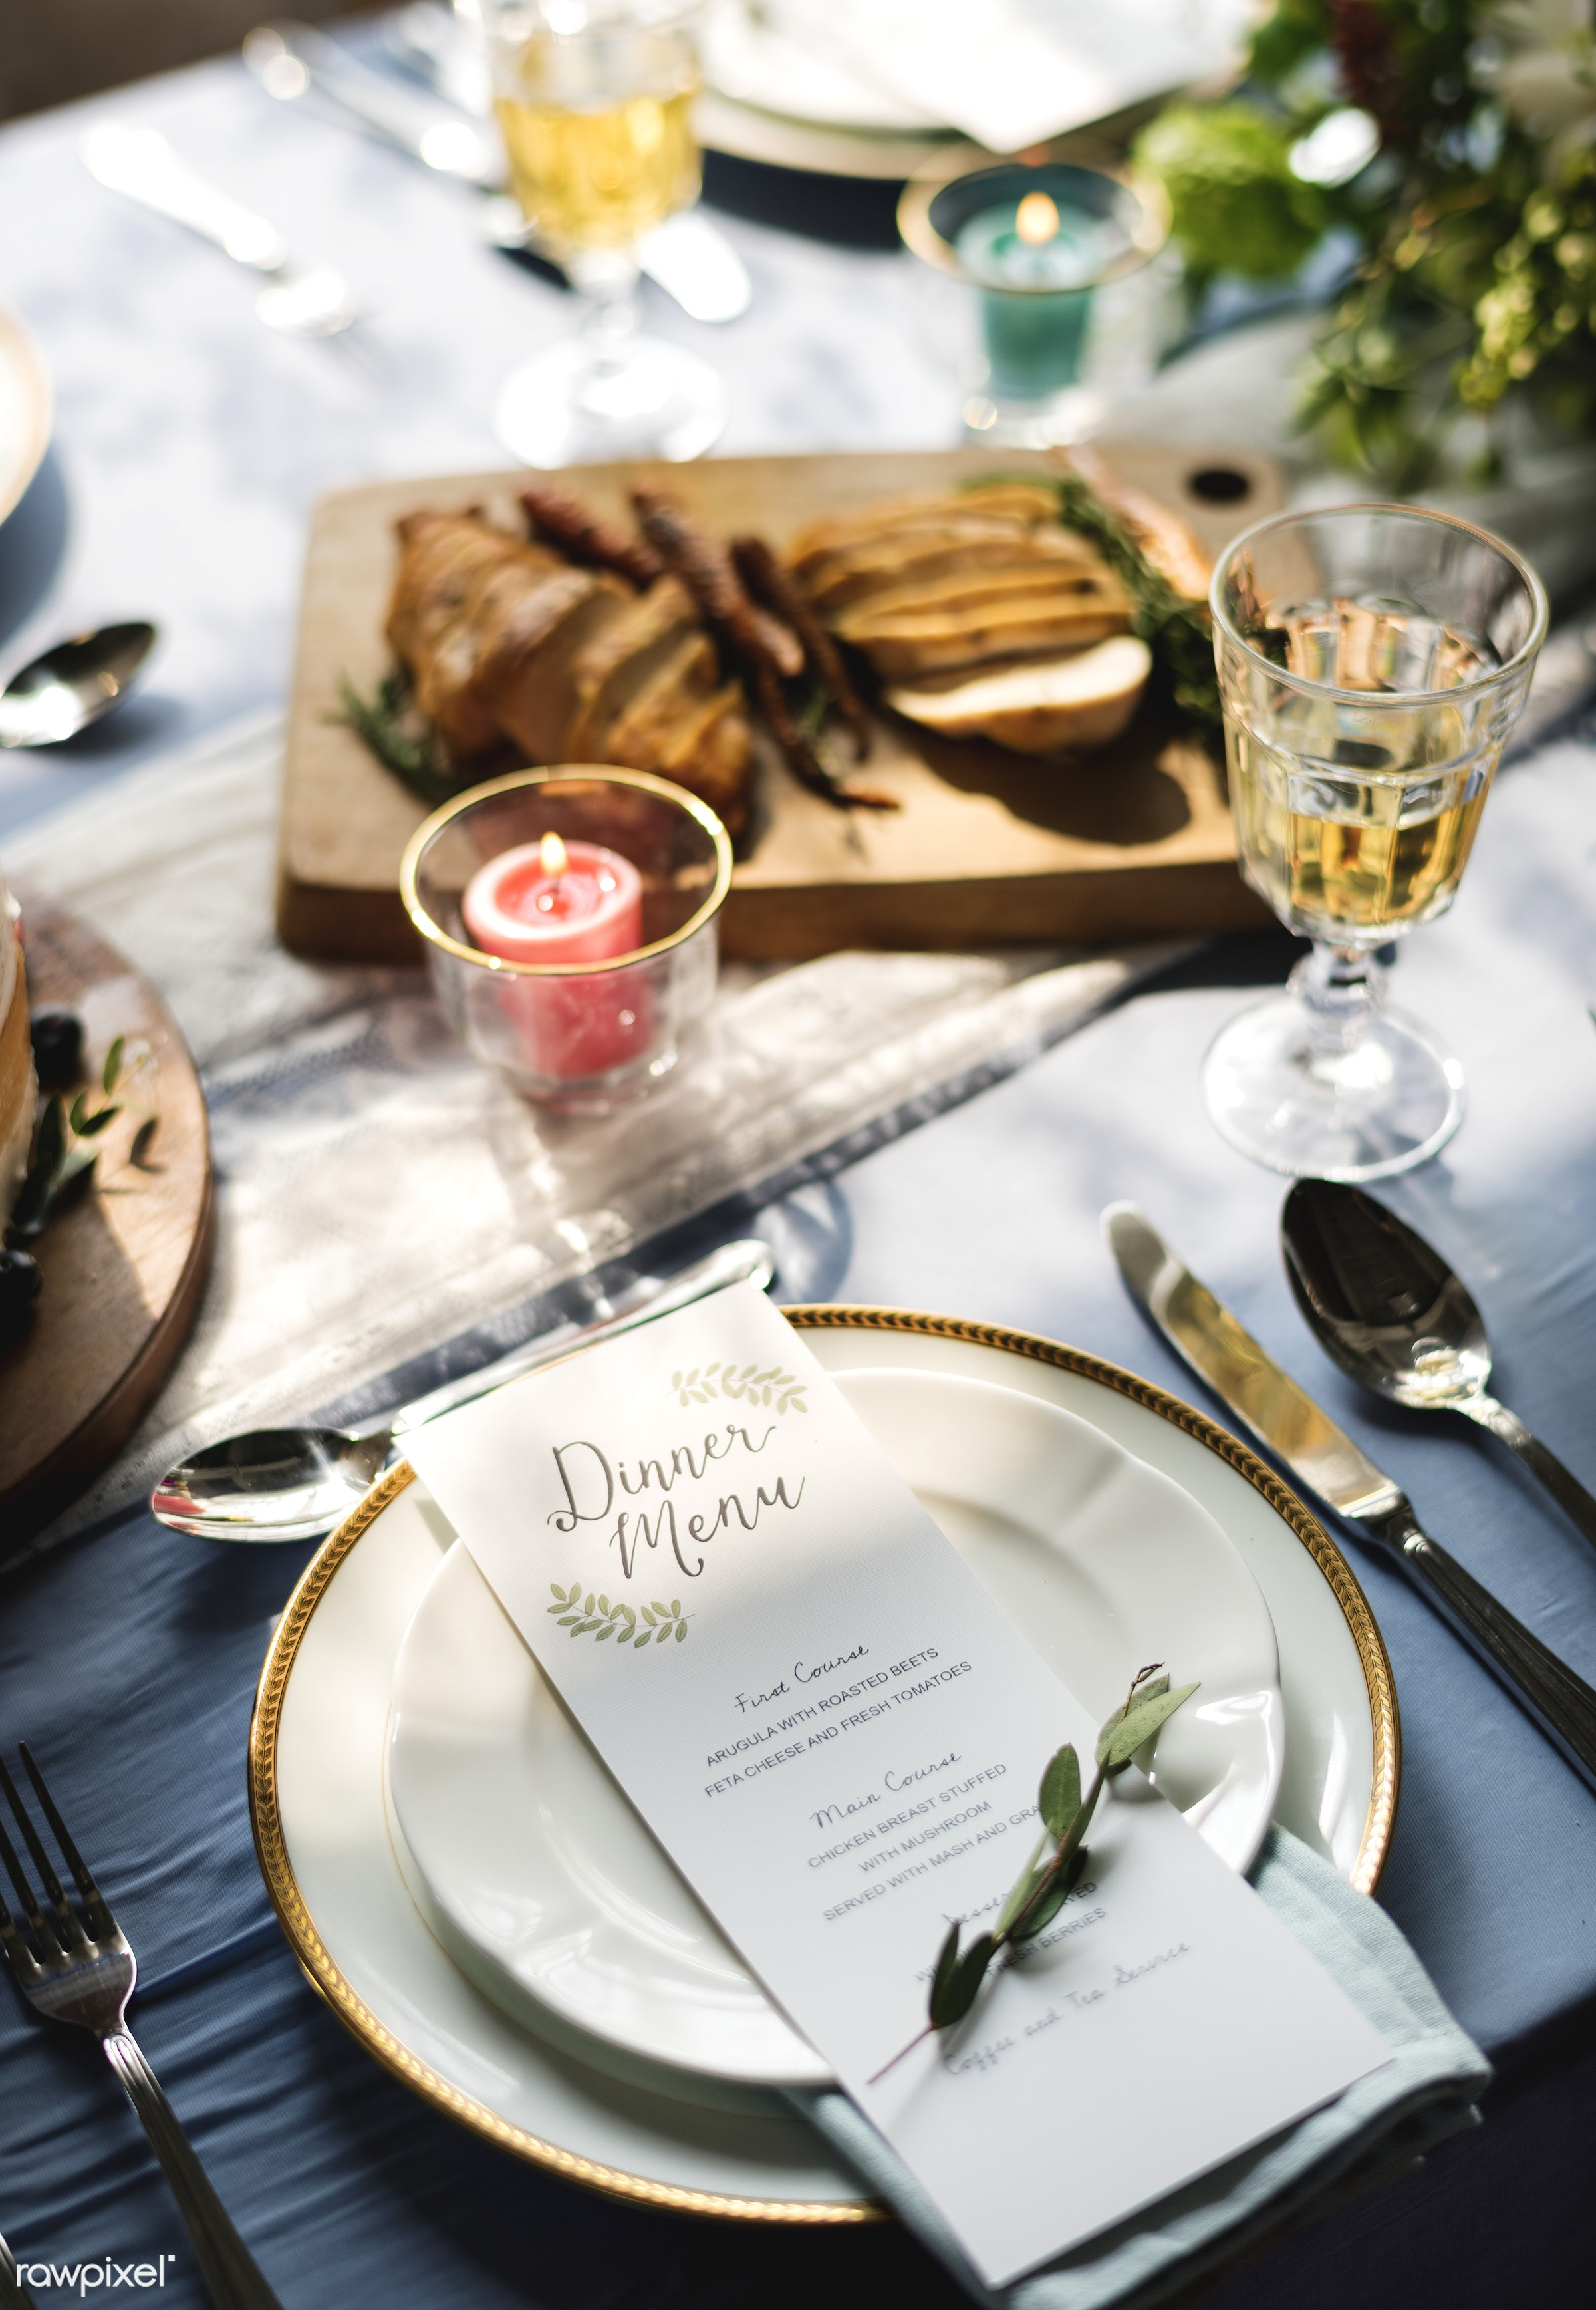 Dinner menu on a clean plate with leaves - alcohol, champagne, closeup, cutlery, decoration, design, dining, dinner, drink,...